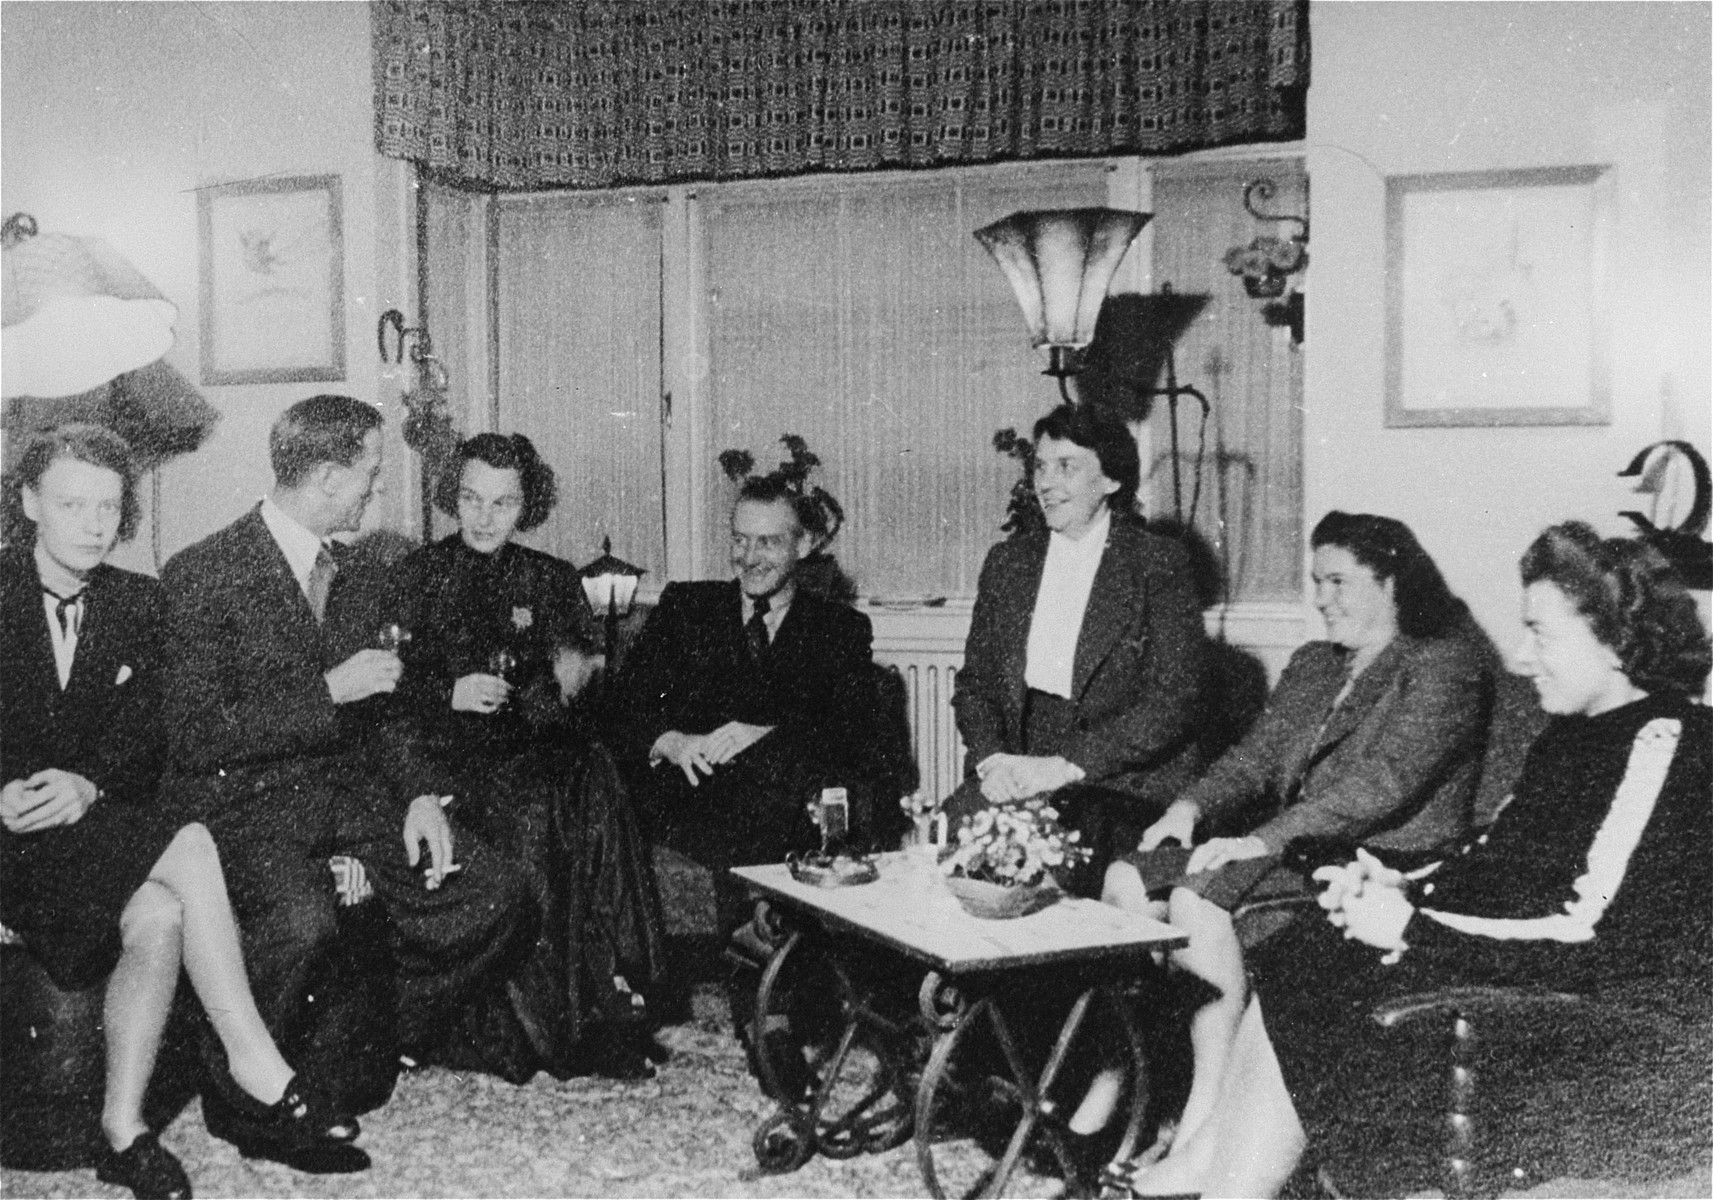 SS-Obersturmbannfuehrer Albert Konrad Gemmeker (center) entertertains guests visiting Westerbork for the Christmas holidays.    Pictured from left to right are: Frau Winkelkaemper (secretary of Ferdinand Hugo Aus der Fuenten), SS-Haupsturmbannfuehrer Ferdinand Hugo Aus der Fuenten (Head of the Central Office of Jewish Emigration in Amsterdam), Elisabeth Helena Hassel-Muellender (Gemmeker's mistress) and Gemmeker.  The three women at right are unidentified.  At the time this photo was taken, Gemmeker had only been commandant of Westerbork since the previous October.  He therefore arranged for a banquet to be held at Westerbork in celebration of both Christmas and his new position.